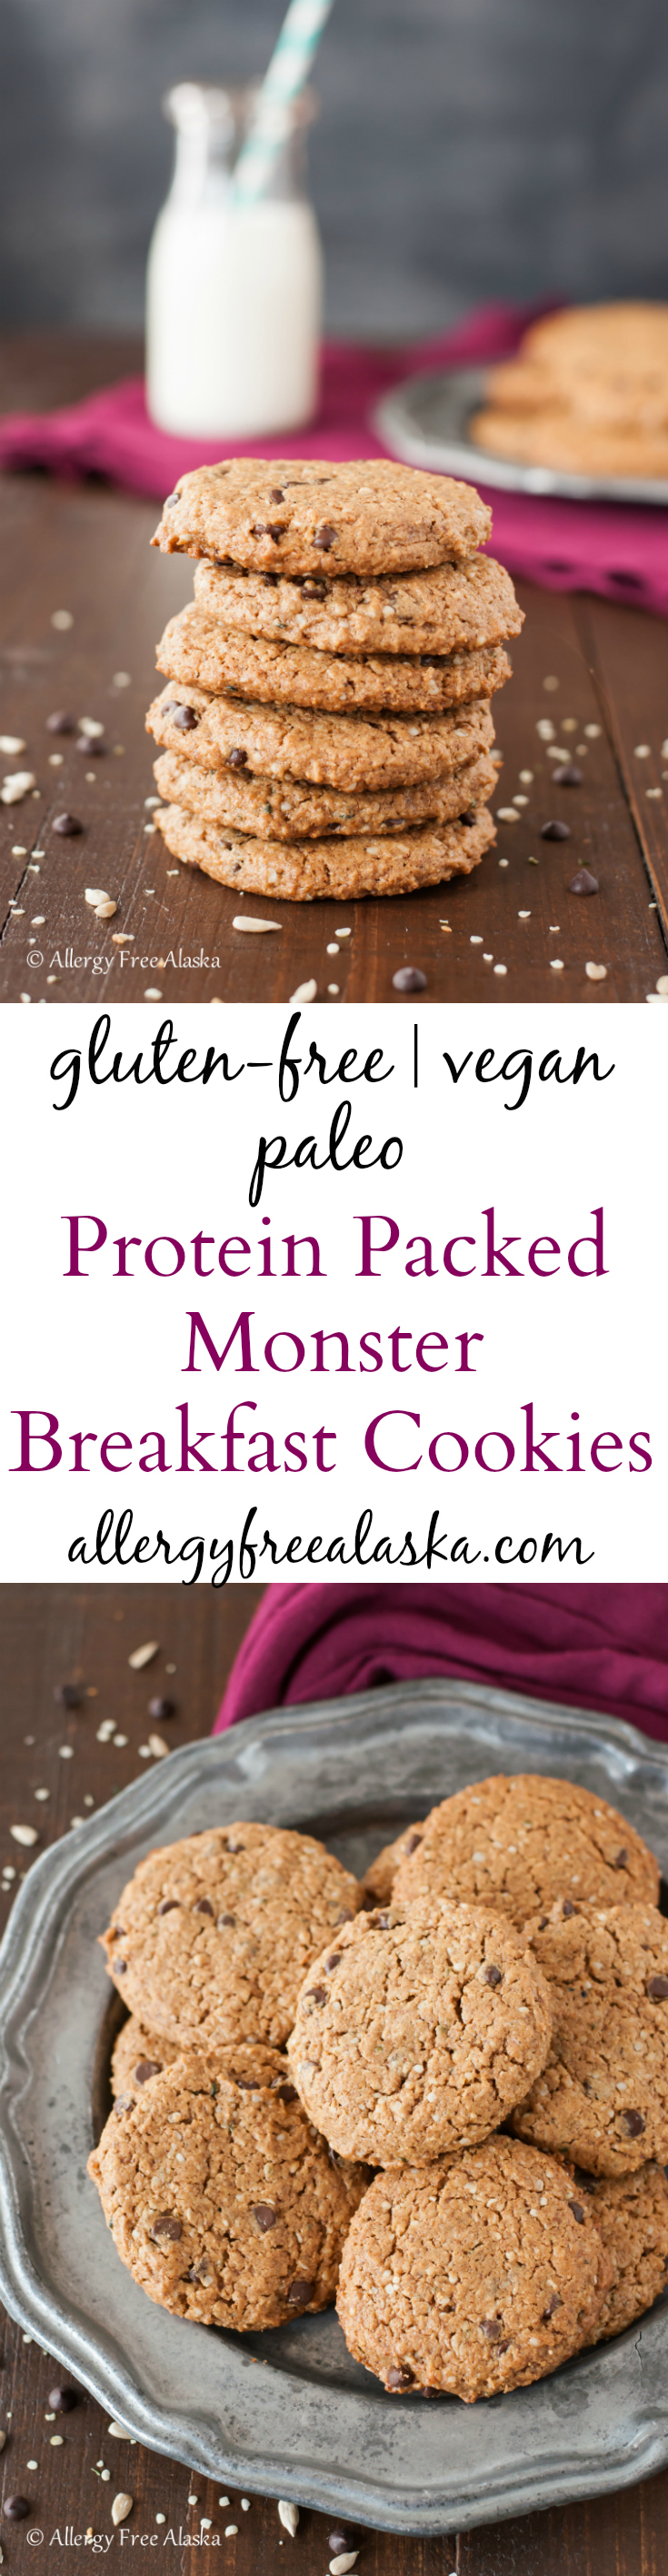 Protein Packed Monster Breakfast Cookies Recipe from Allergy Free Alaska. Gluten-free, Paleo, vegan & nut-free.